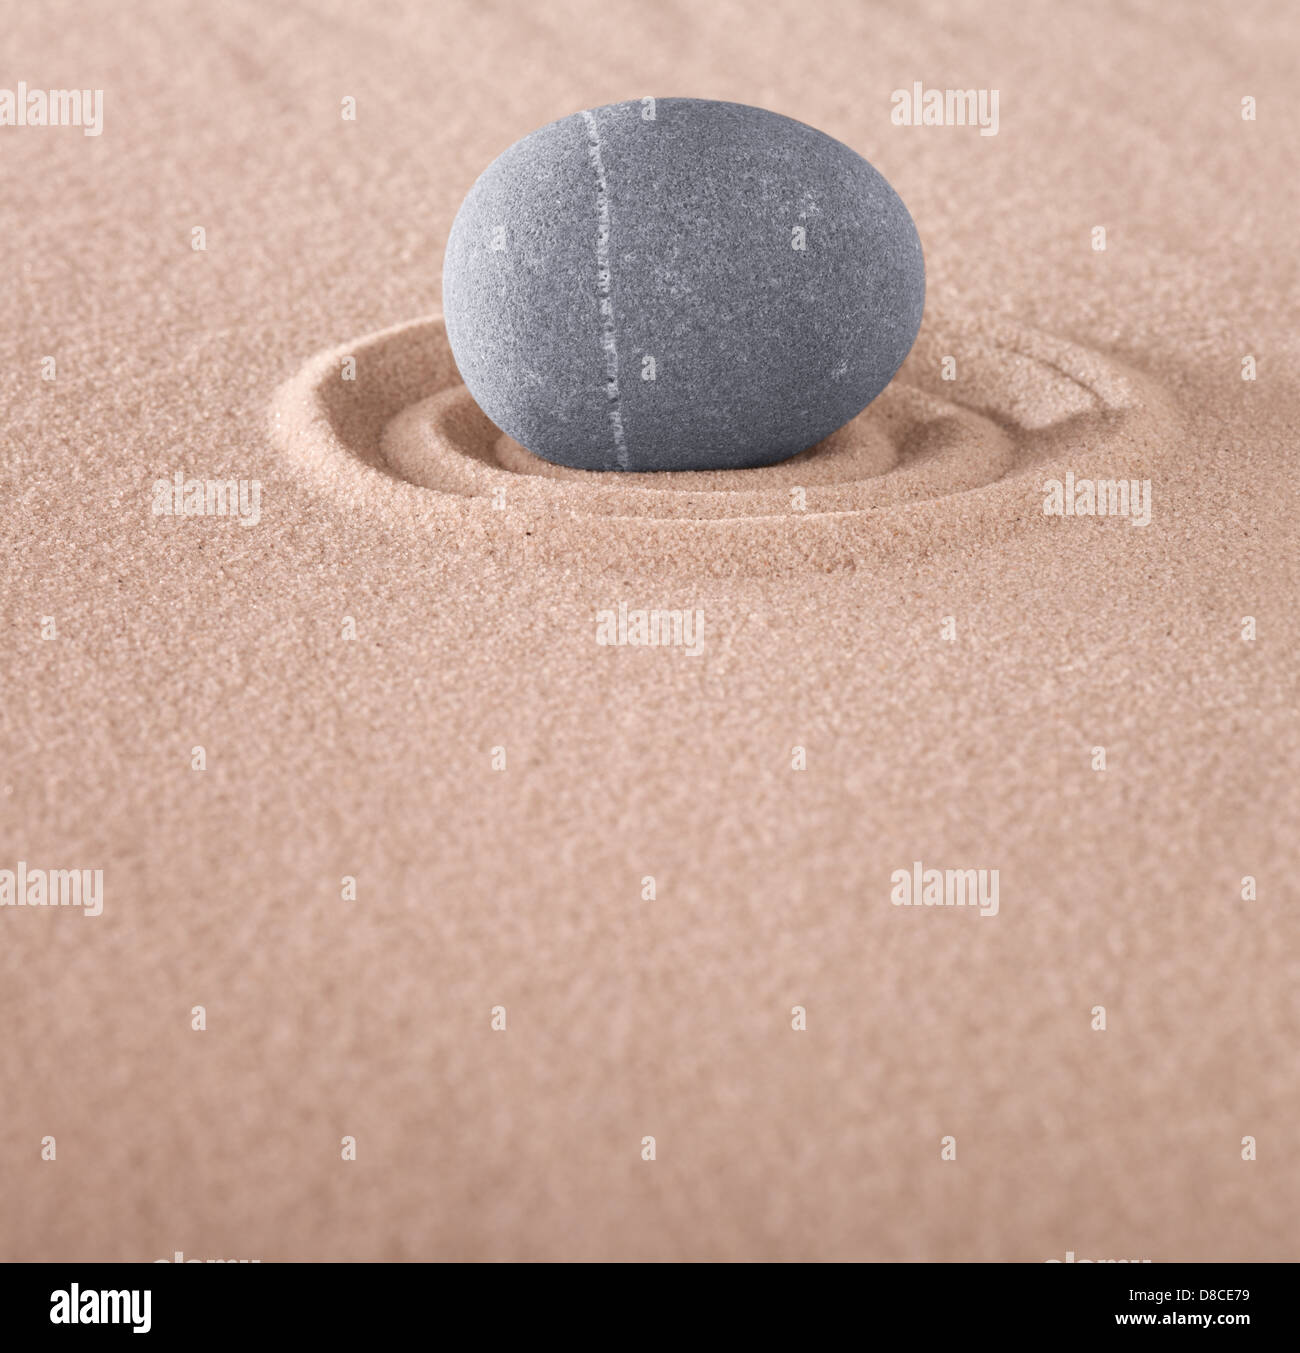 round stone in Japanese zen garden concept for meditation relaxation harmony and meditation - Stock Image